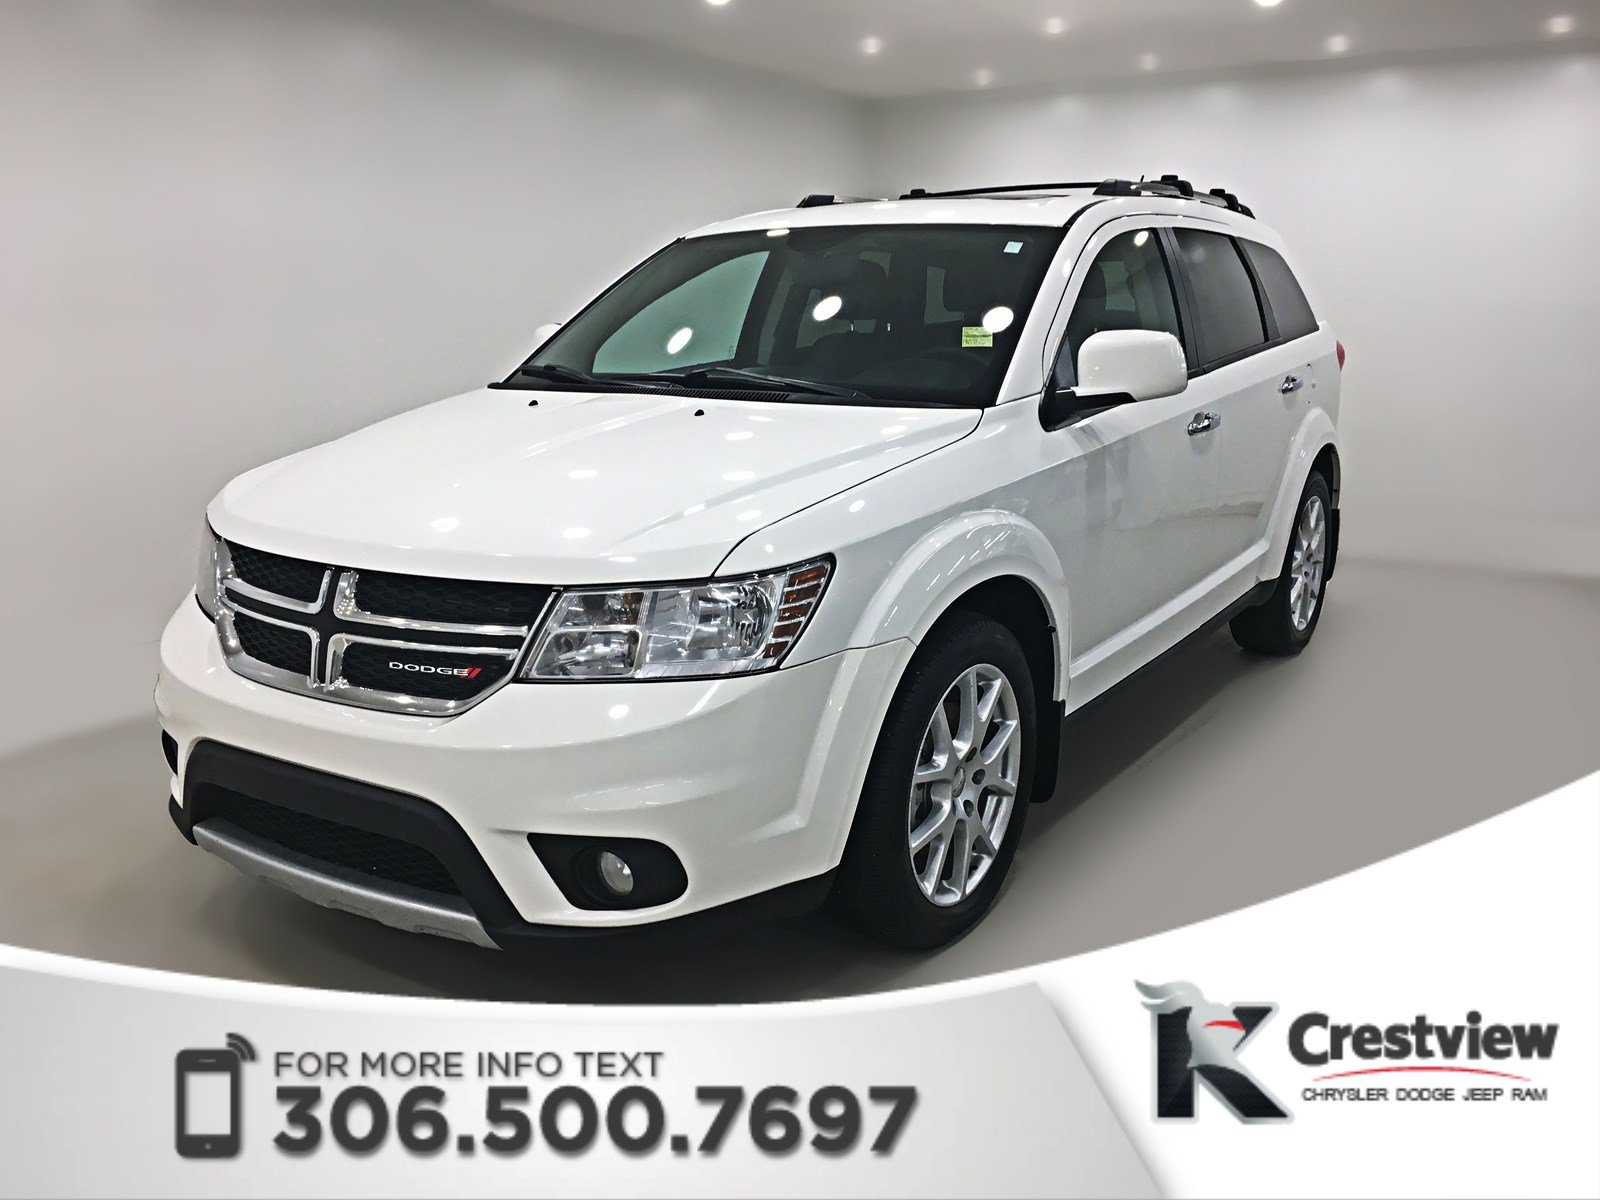 Pre-Owned 2015 Dodge Journey R/T AWD | Sunroof | Navigation | DVD